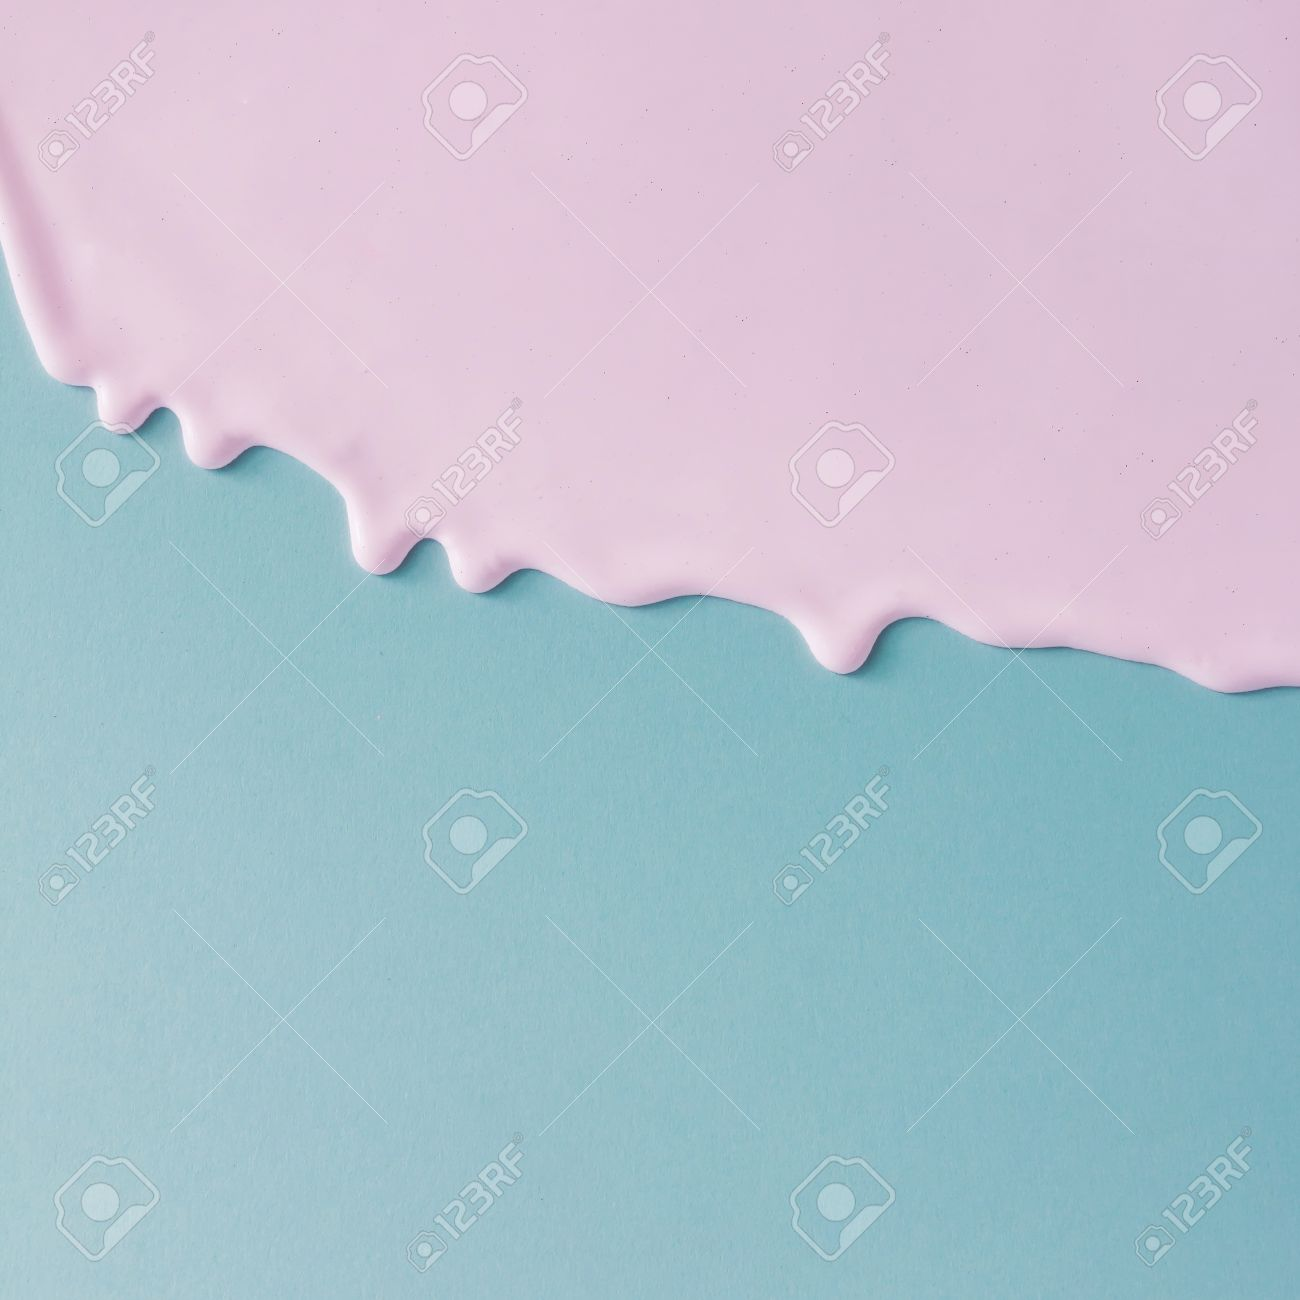 Abstract pink oil paint texture on blue canvas. Minimalistic background with copy space. - 82877720